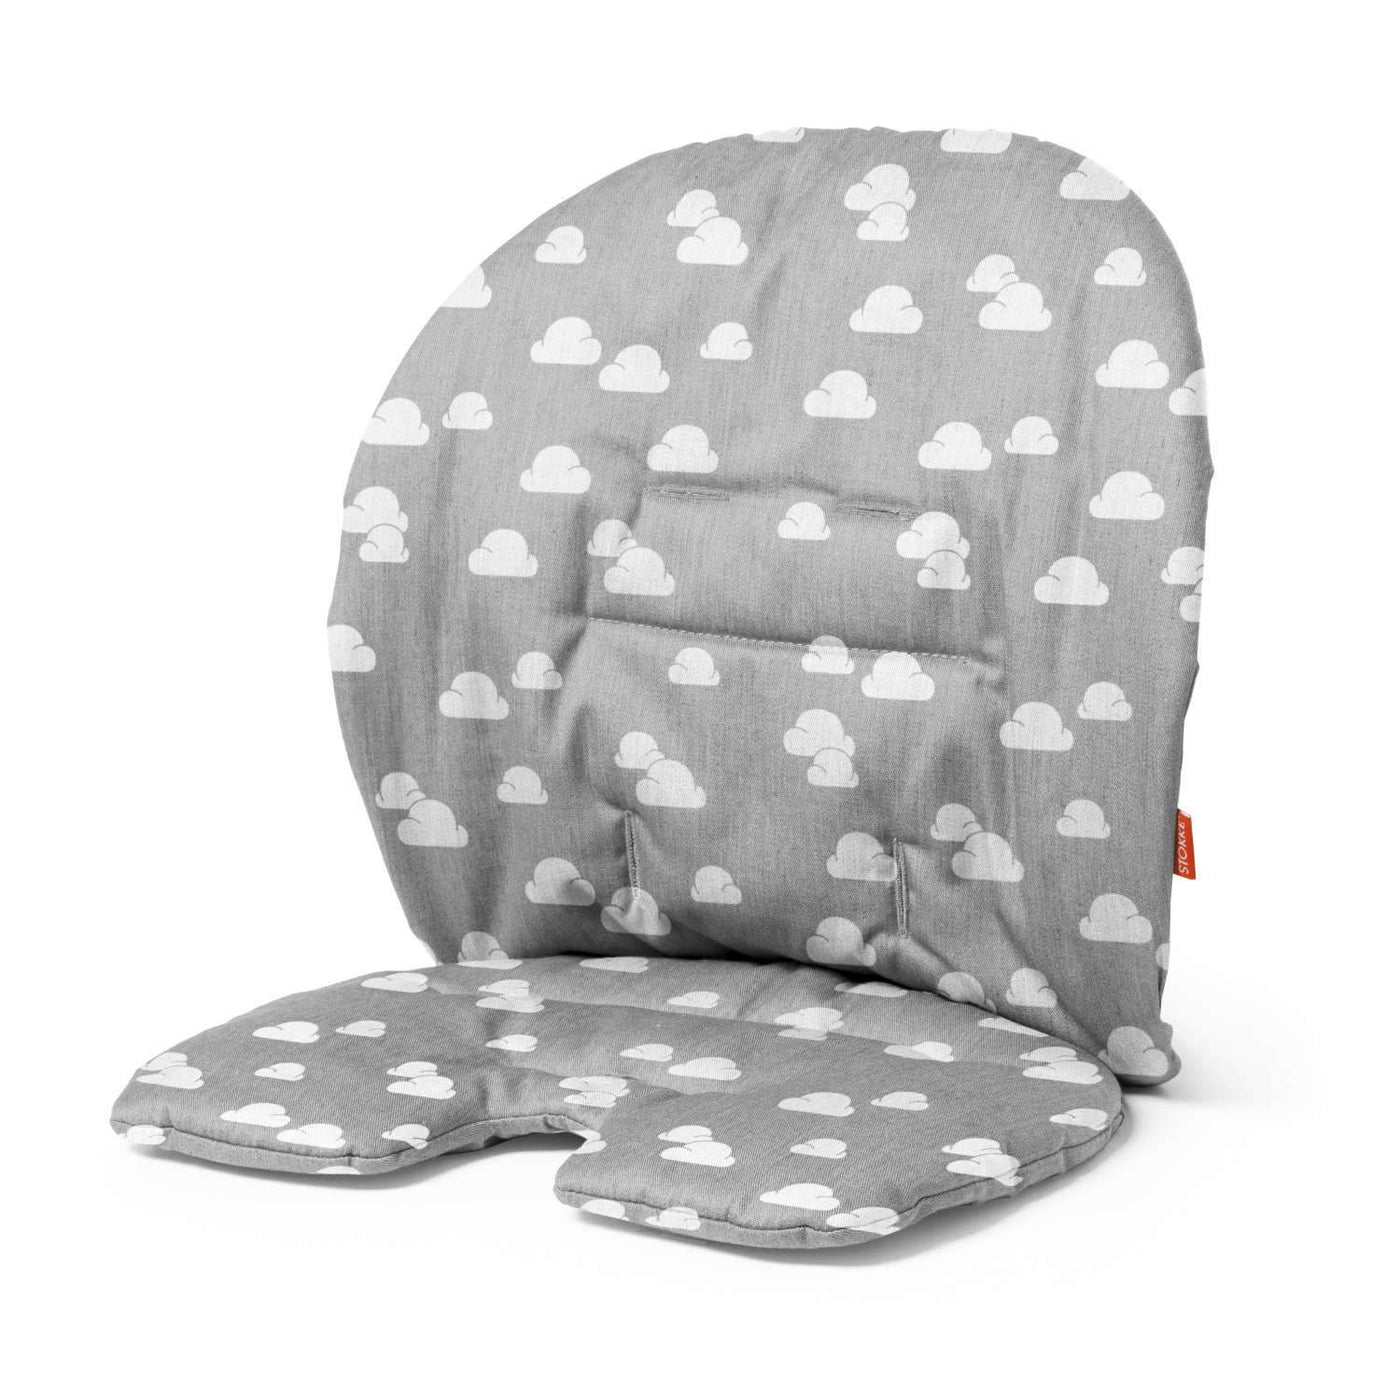 Stokke Baby Set Comfortable Fitted Cushion For Steps High Chair 3 COLOR CHOICE